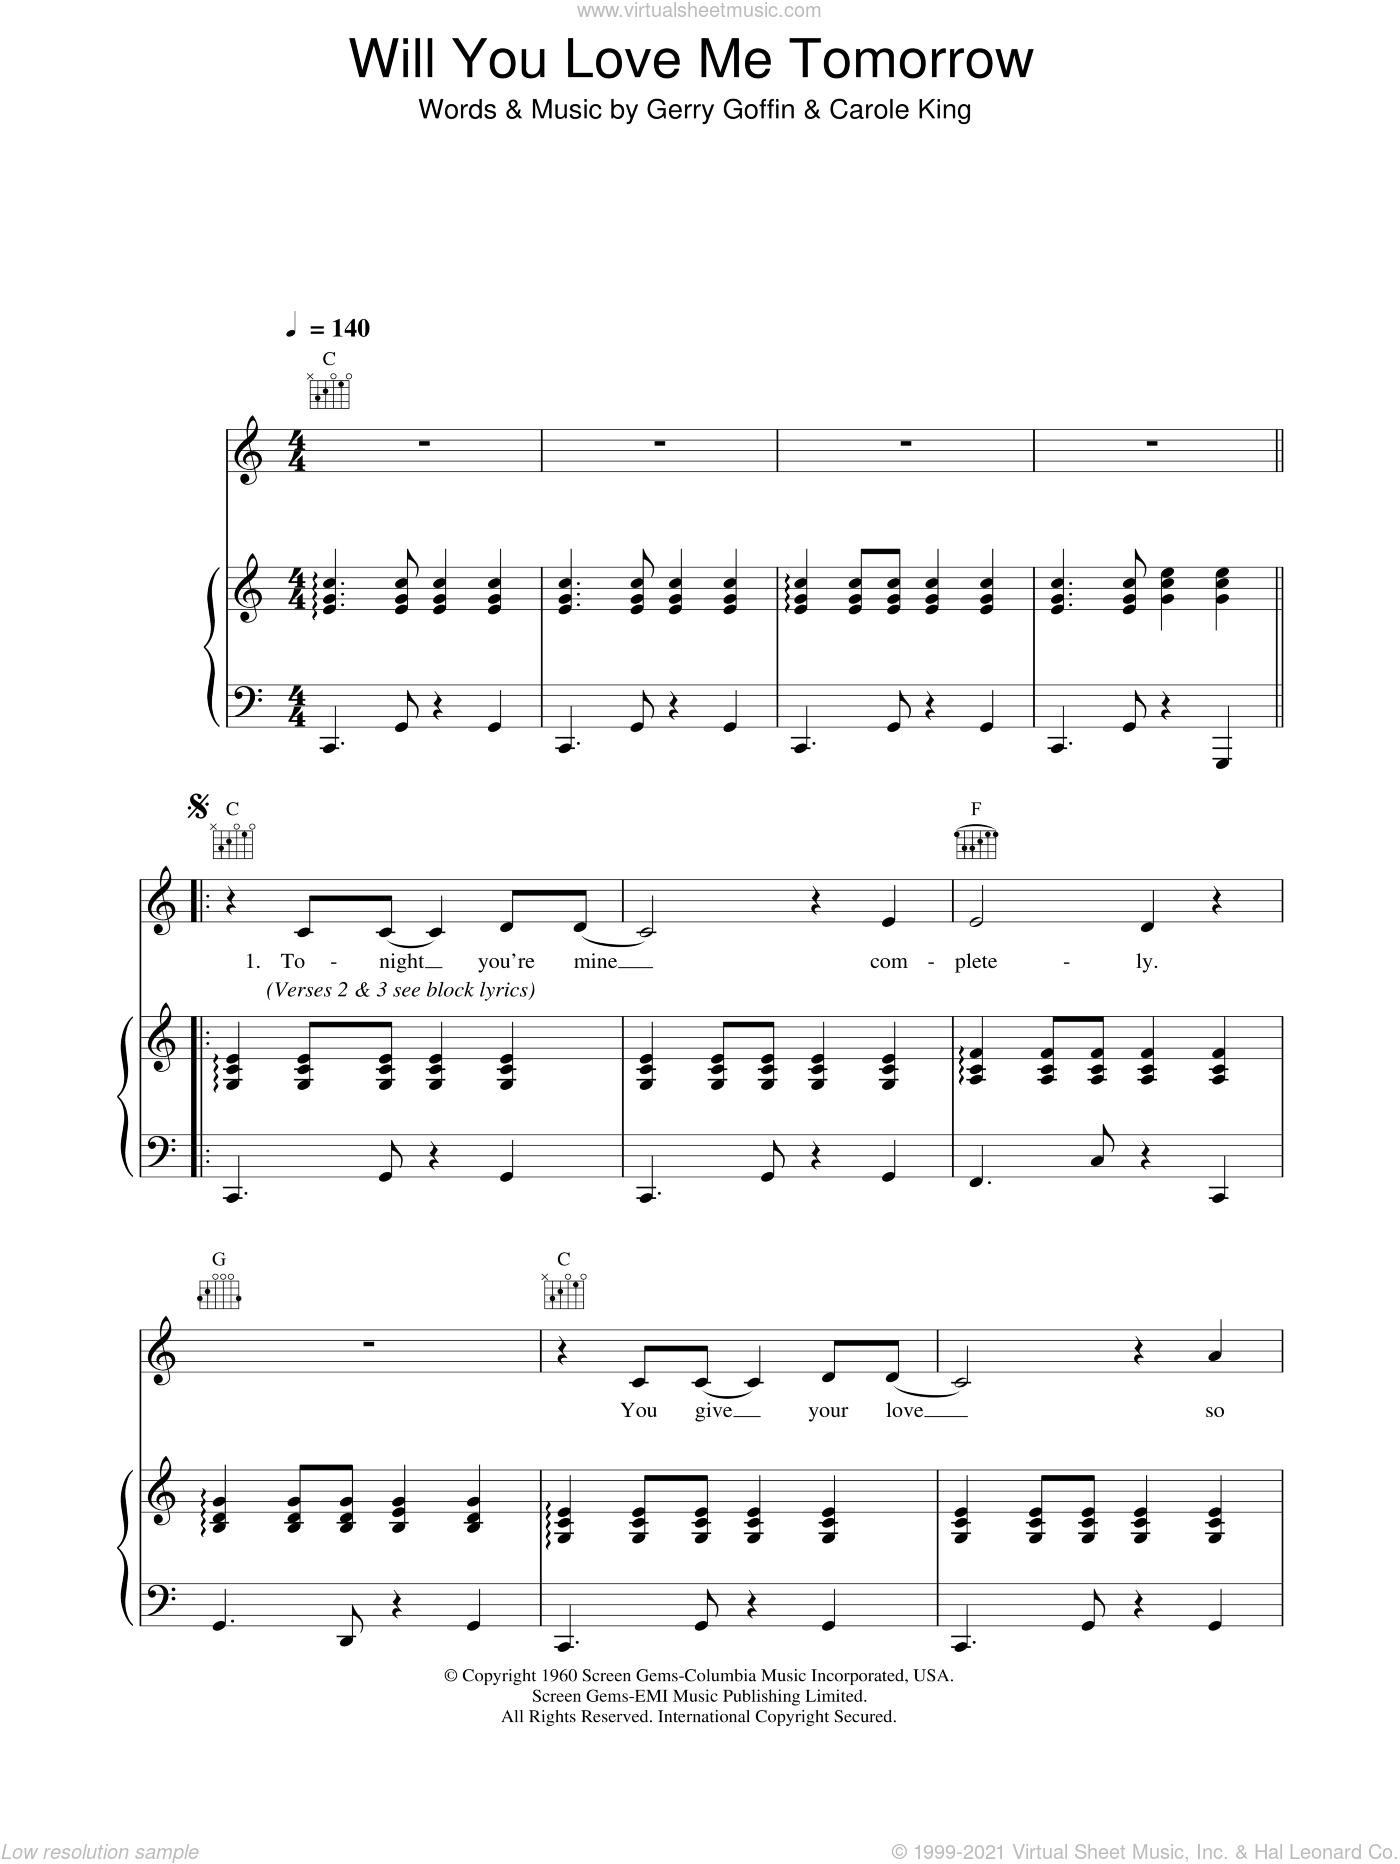 Will You Love Me Tomorrow (Will You Still Love Me Tomorrow) sheet music for voice, piano or guitar by The Shirelles, Carole King and Gerry Goffin, intermediate skill level